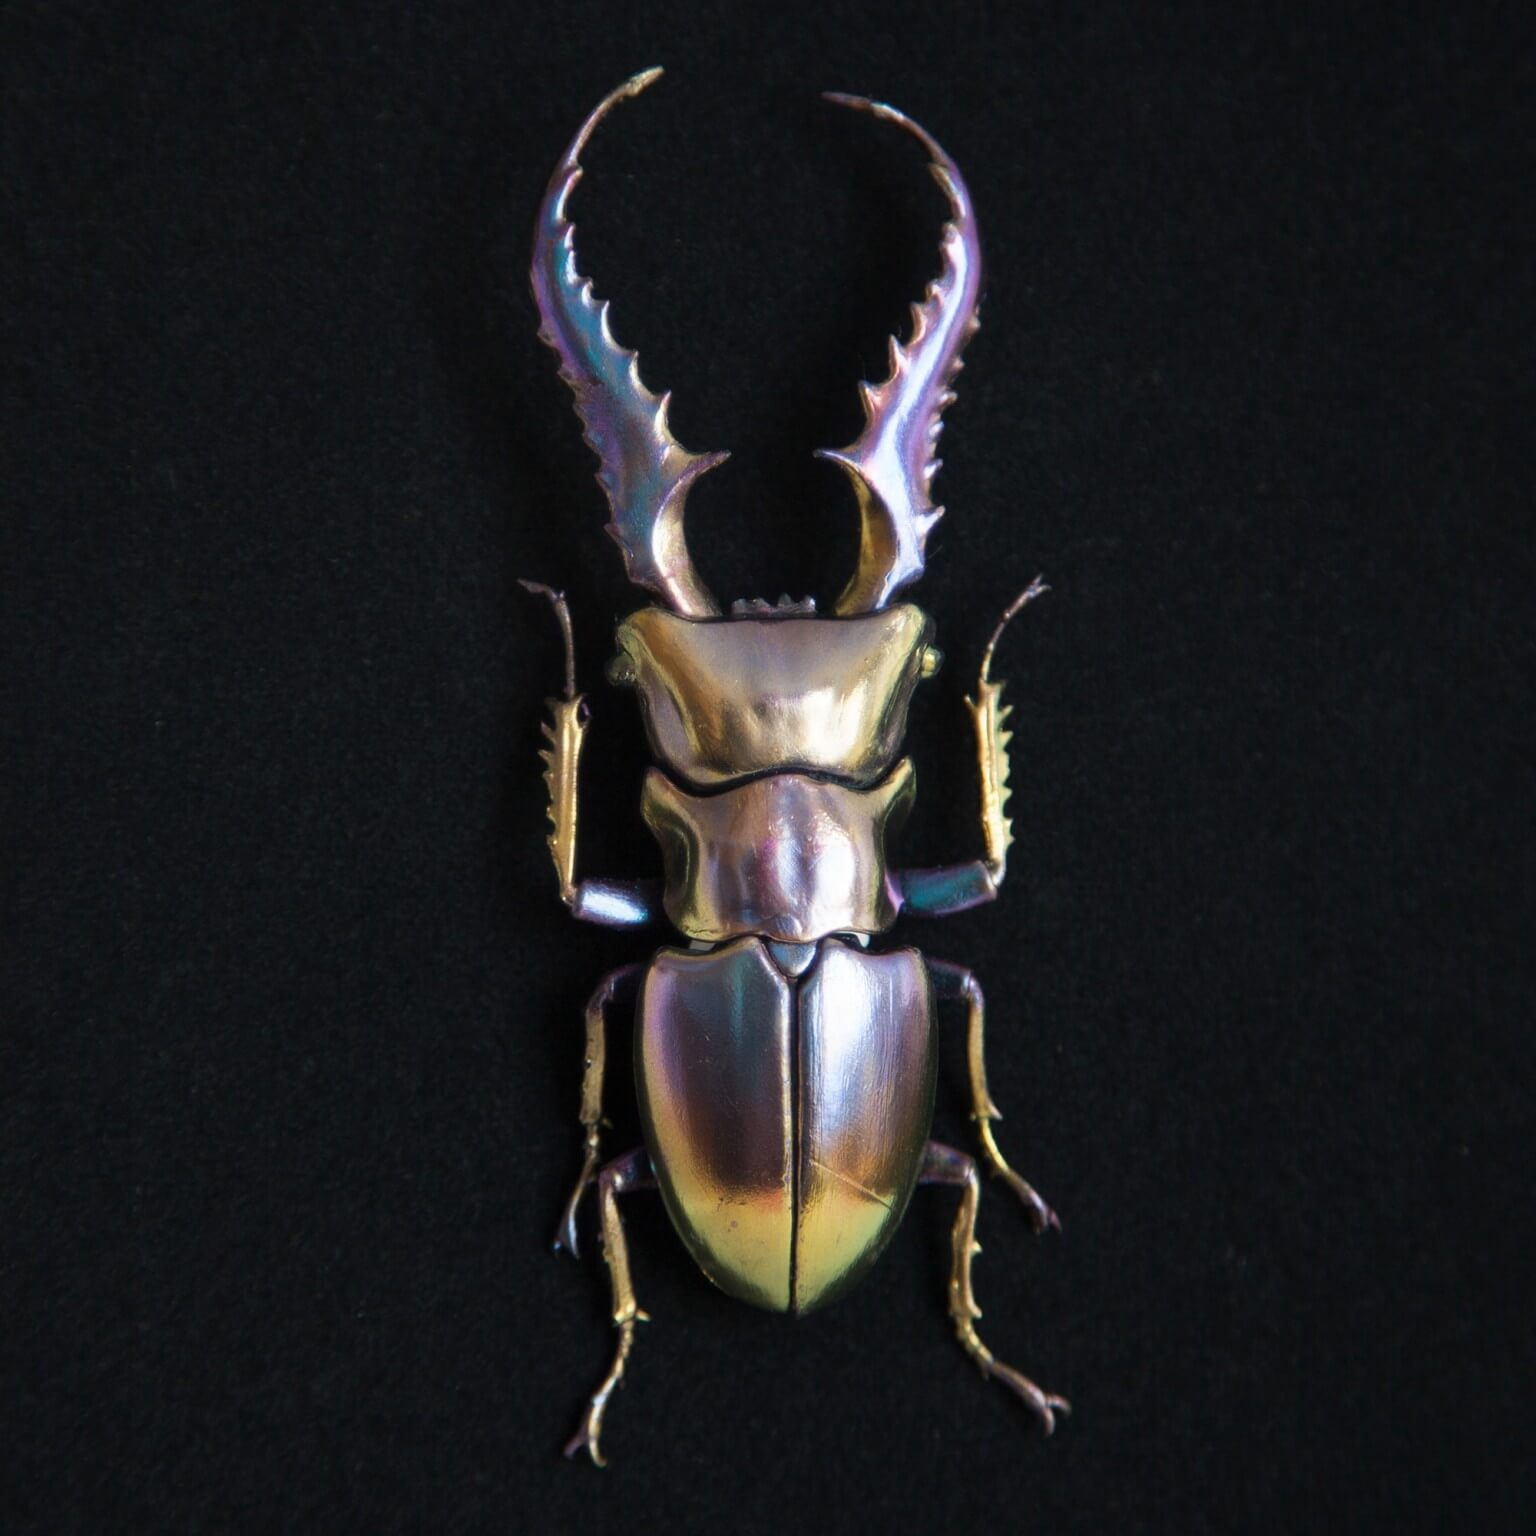 Sculptures of Beetles Covered in Minerals by Nozomi -insects